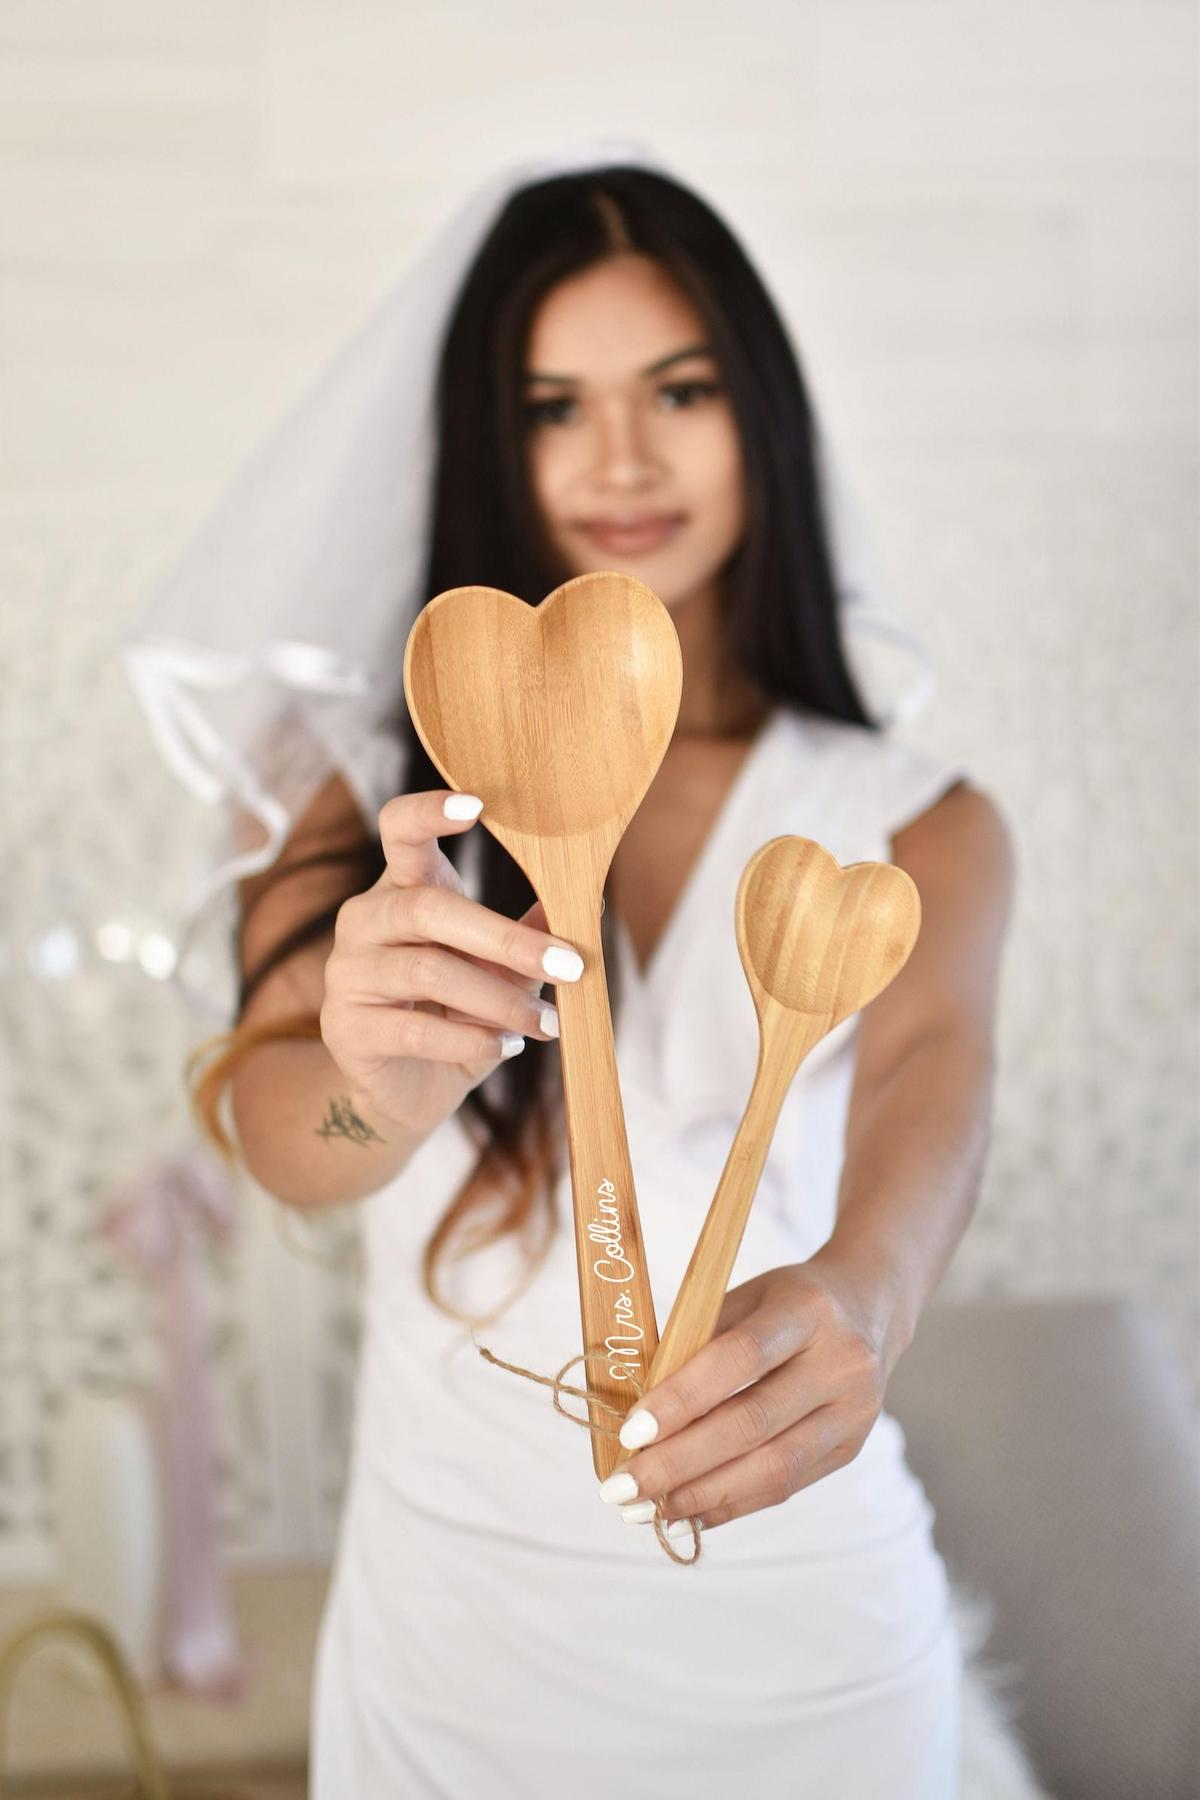 Heart-shaped wooden spoons for the newlyweds